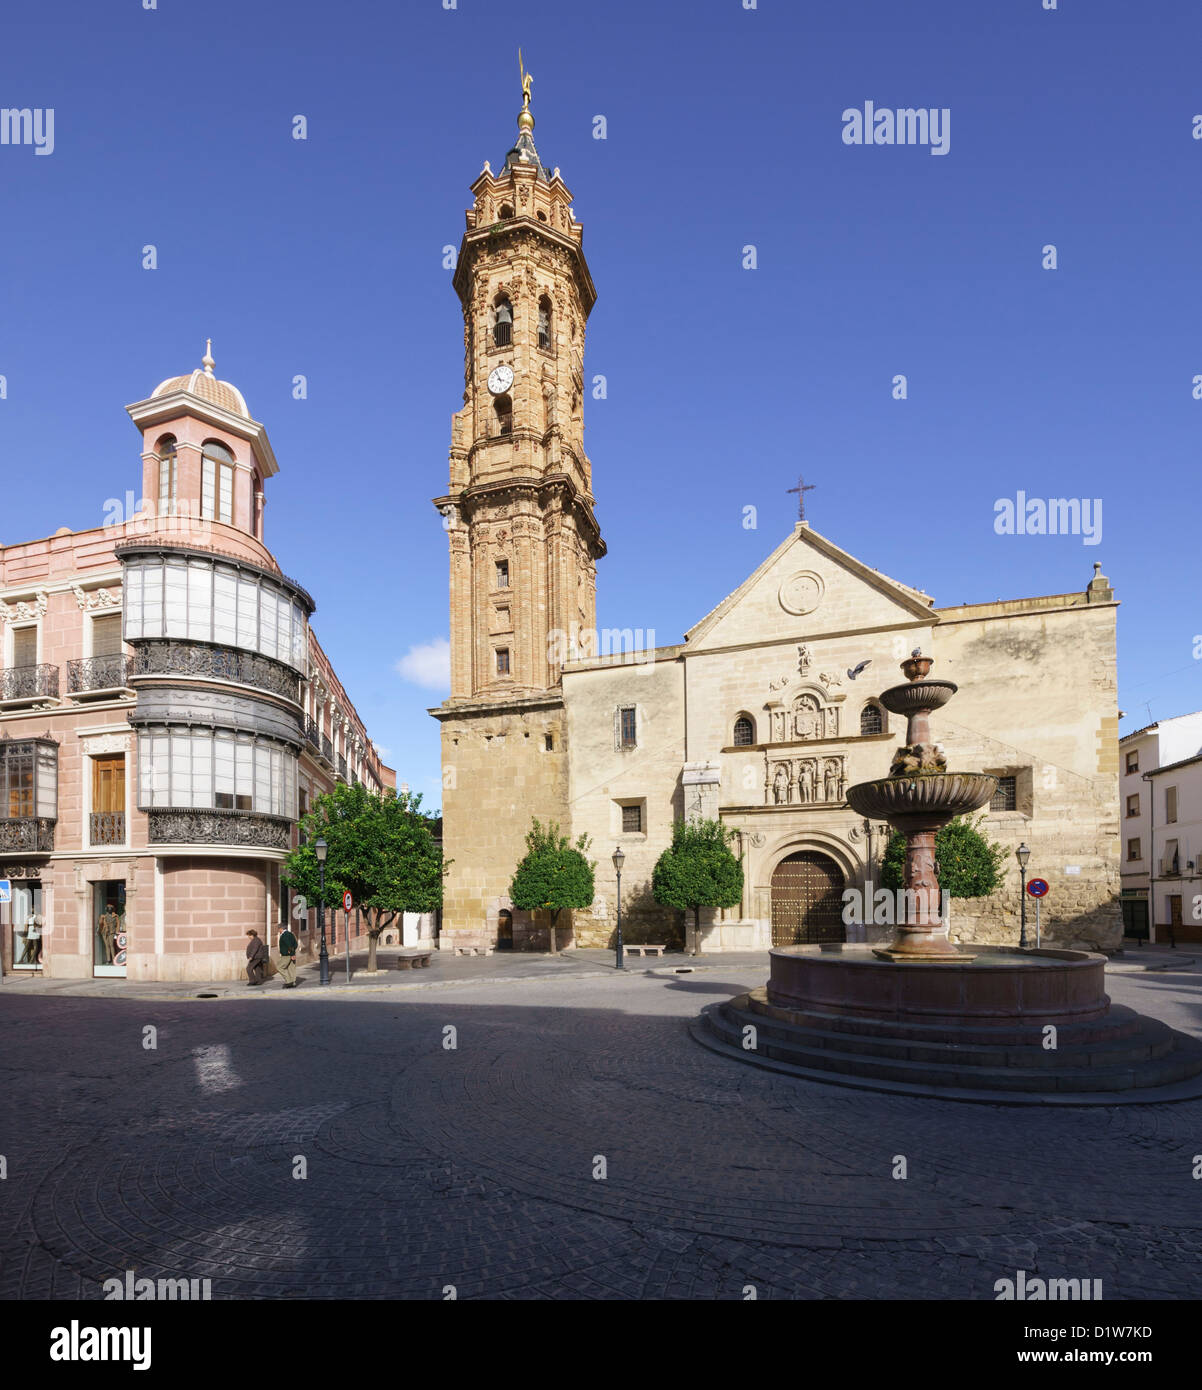 Spain, Andalucia - Antequera. View with church tower of San Sebastian. - Stock Image